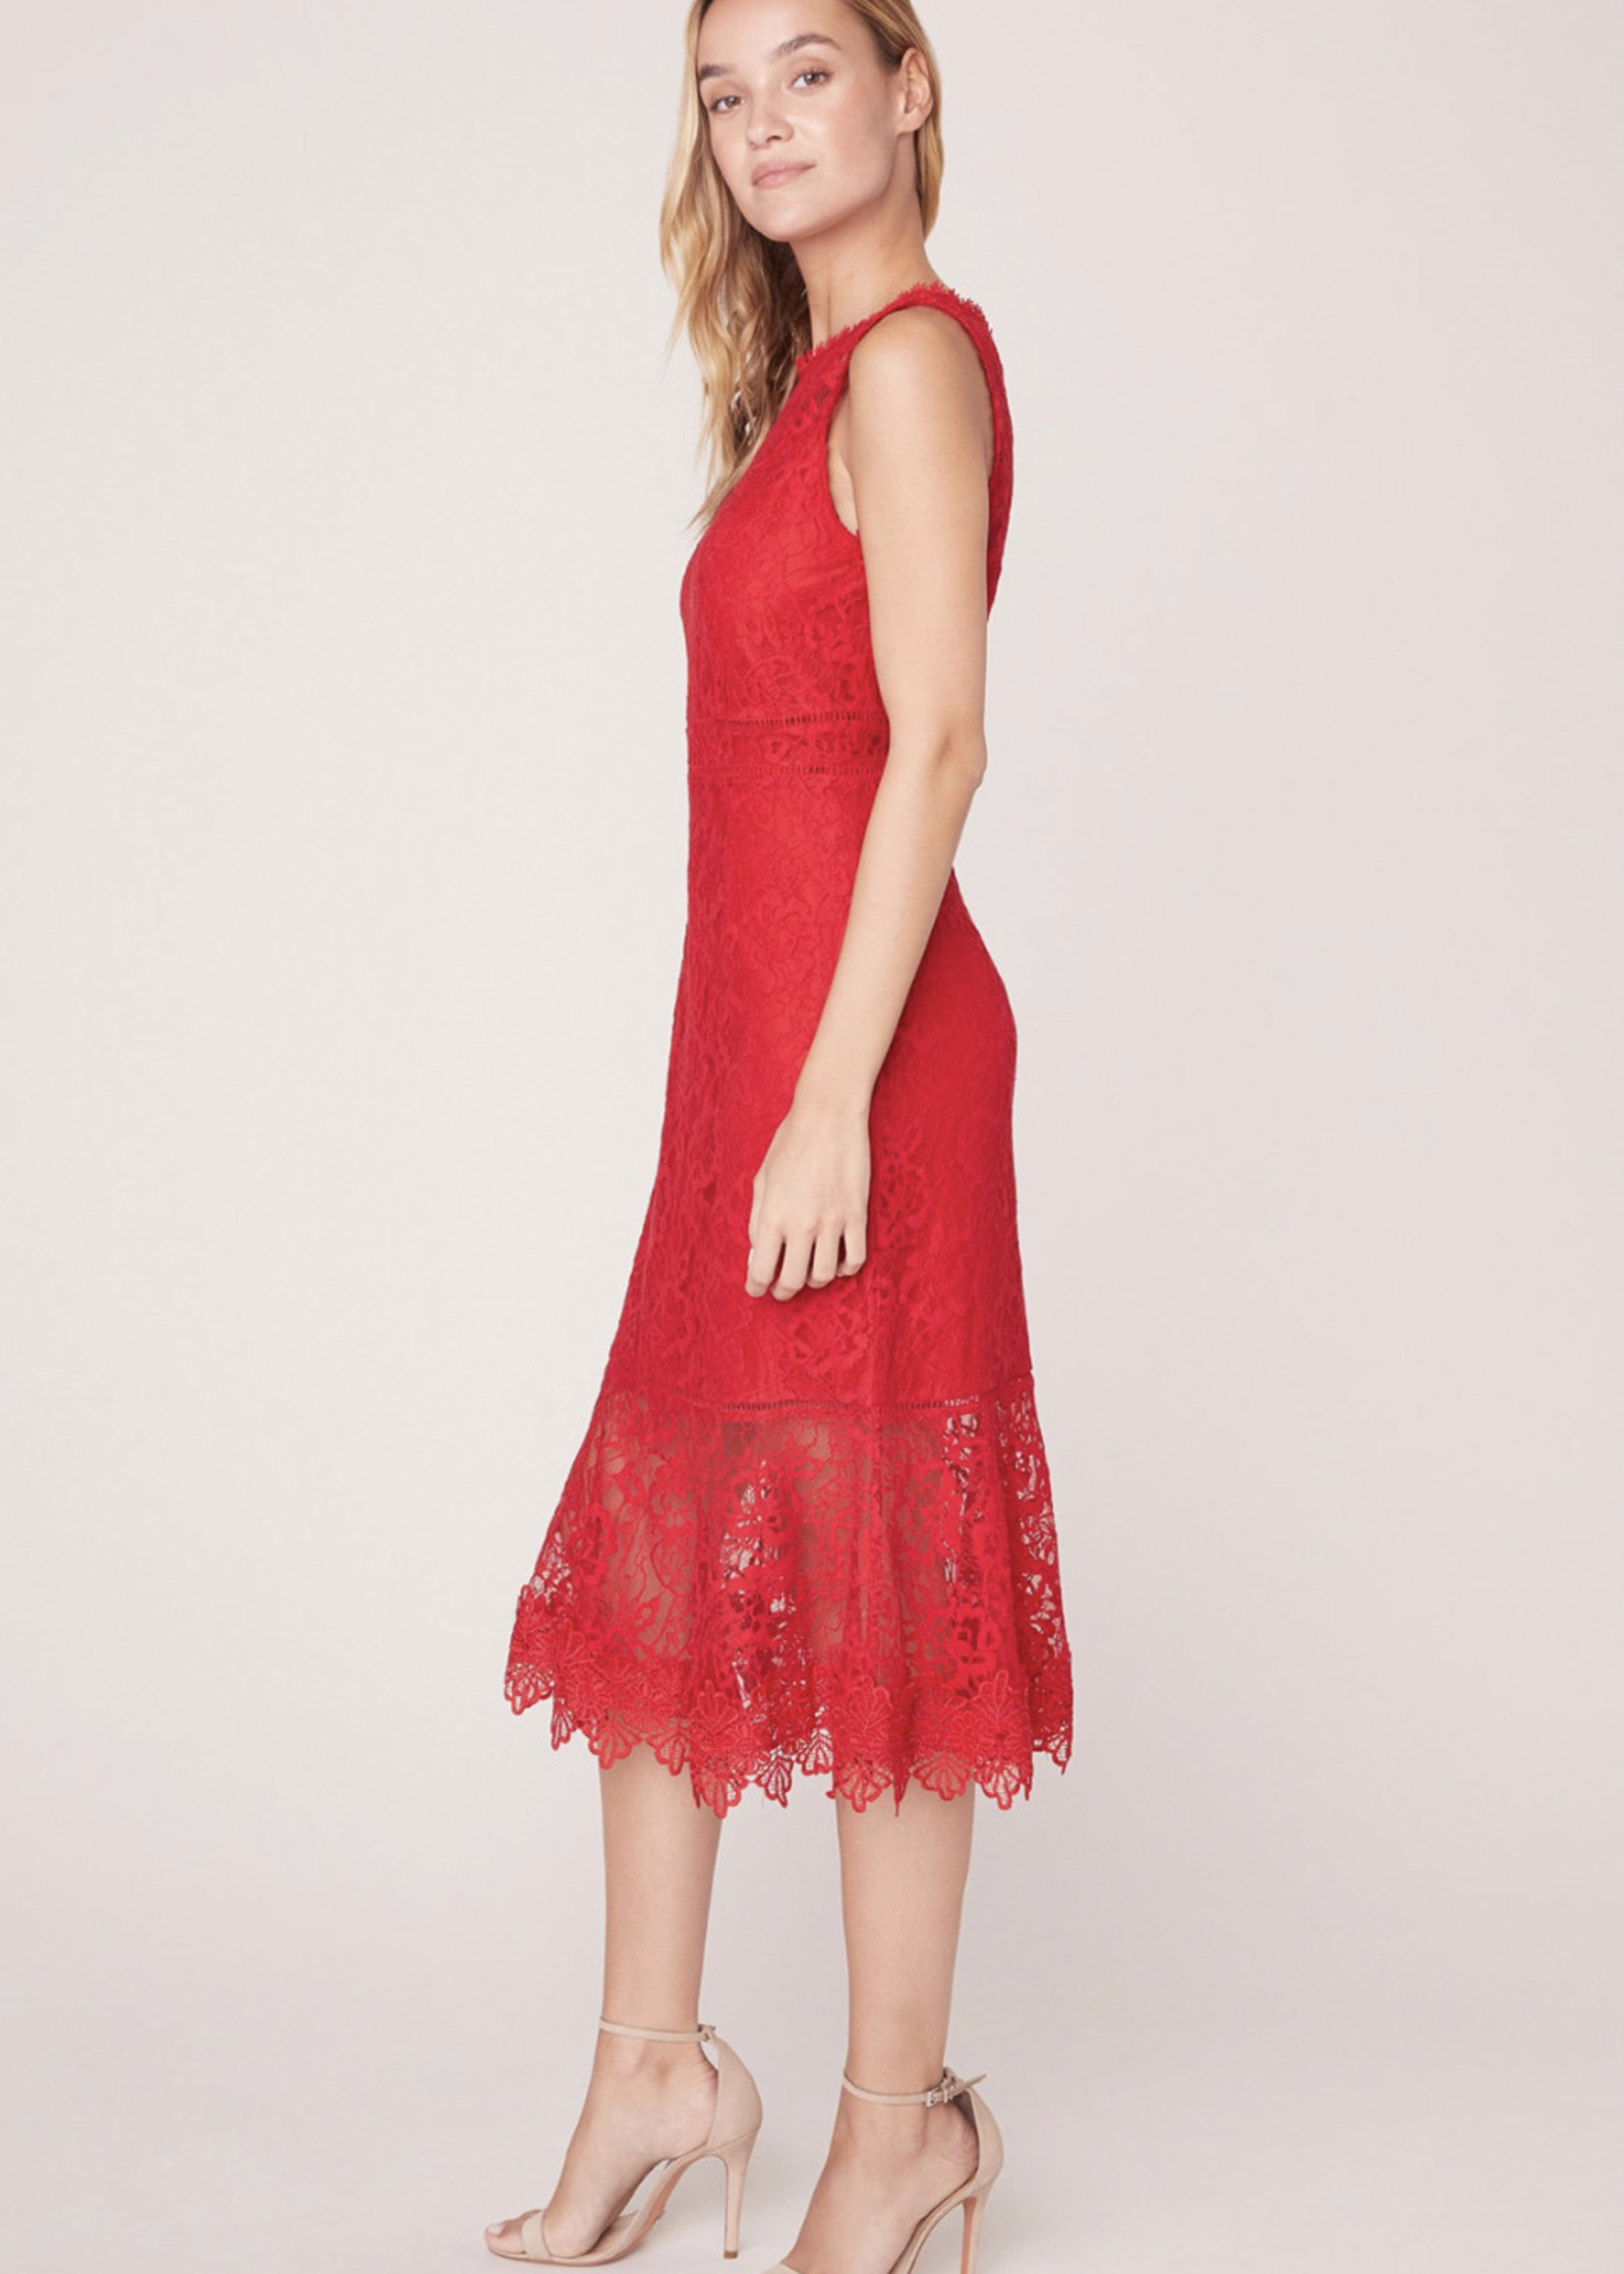 BB DAKOTA Hearing Sirens Dress, Red lace